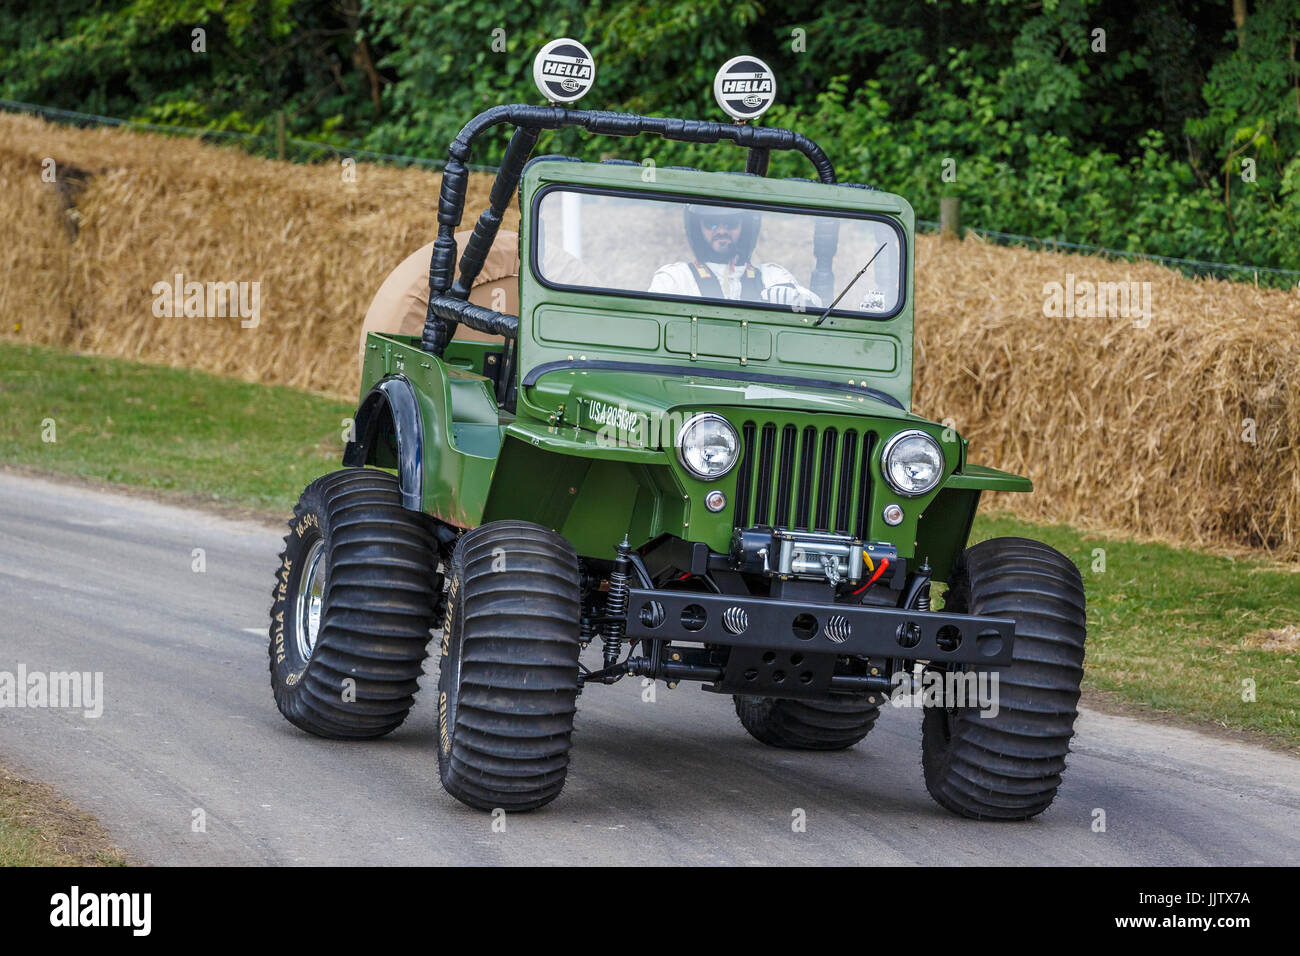 1982 Tamiya Wild Willy, the U.S. Army M23 Willys Jeep based reproduction of the toy at the 2017 Goodwood Festival - Stock Image